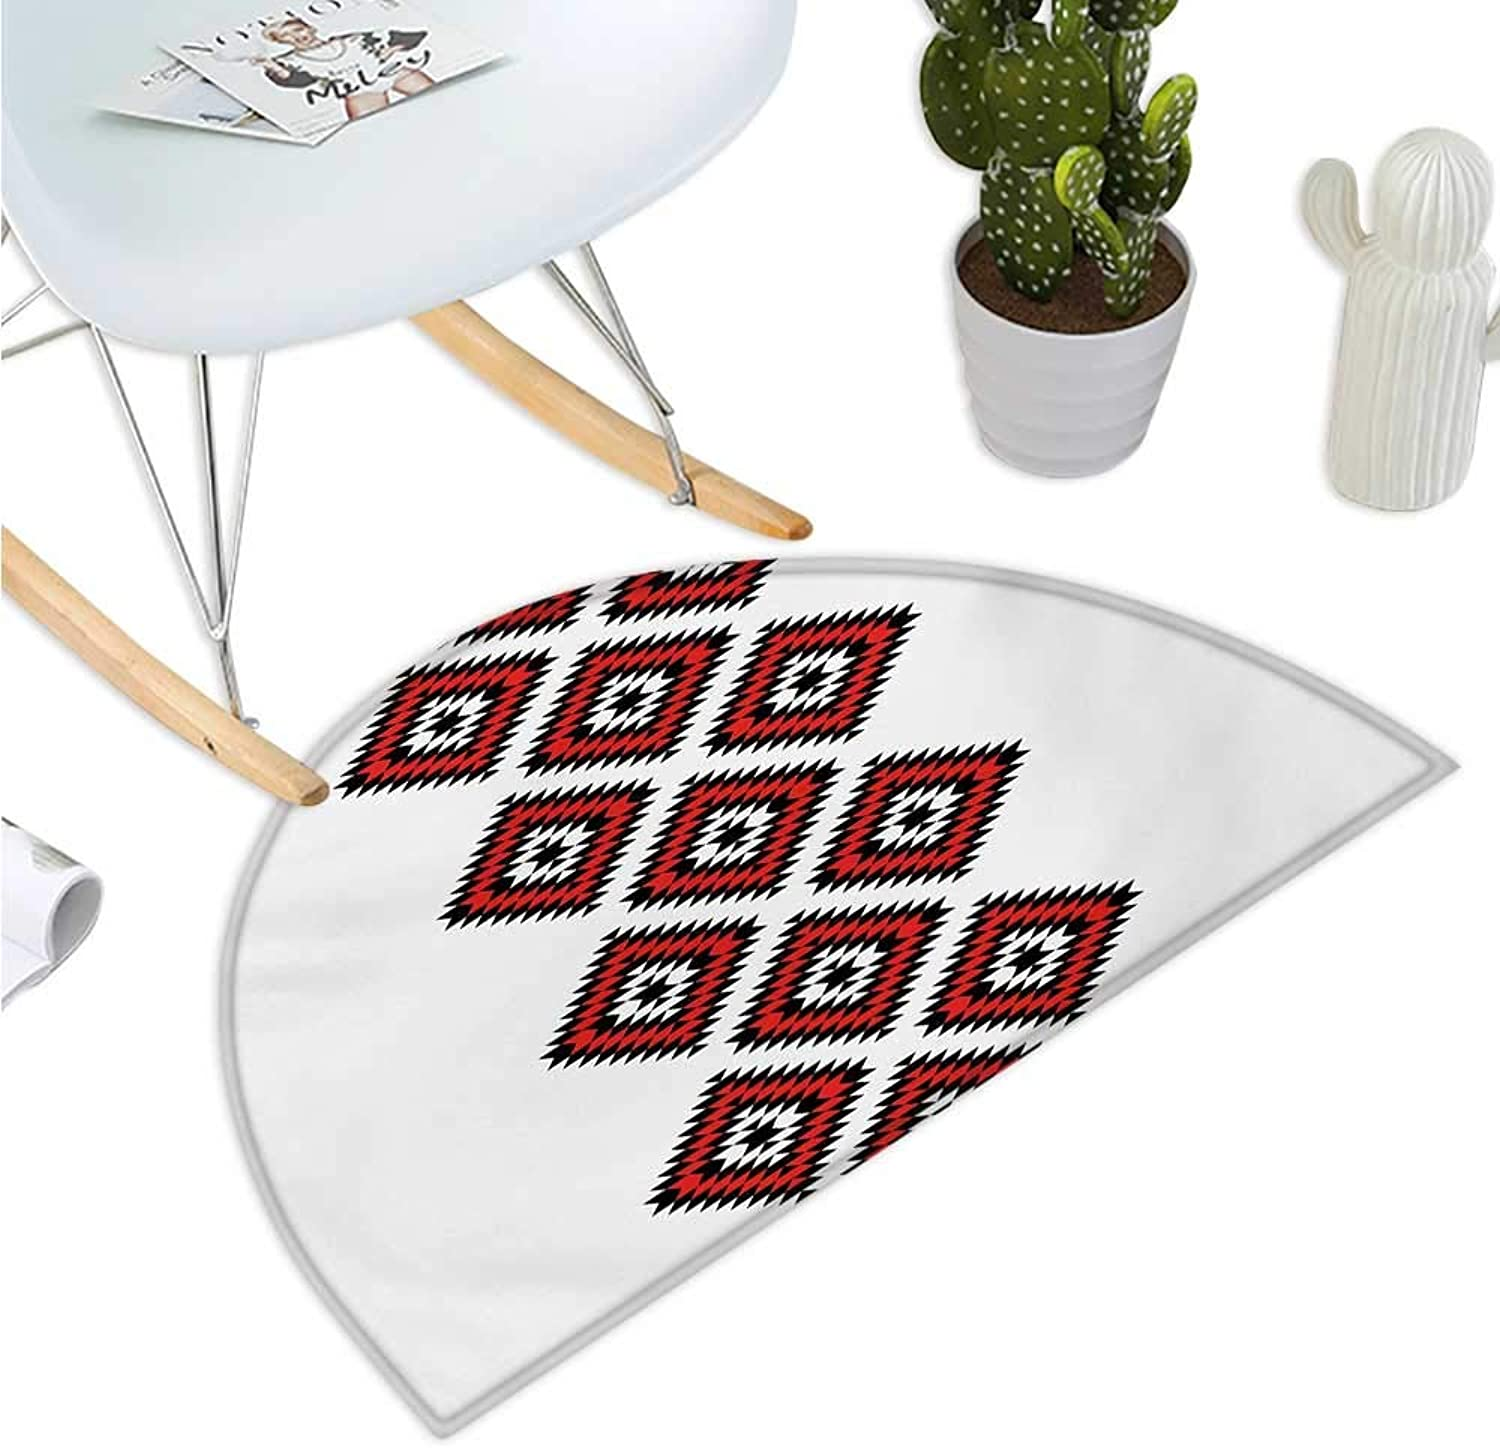 Tribal Half Round Door mats Native American Style Zig Zag Aztec Motif with Embroidery Ornaments Image Bathroom Mat H 39.3  xD 59  Vermilion White